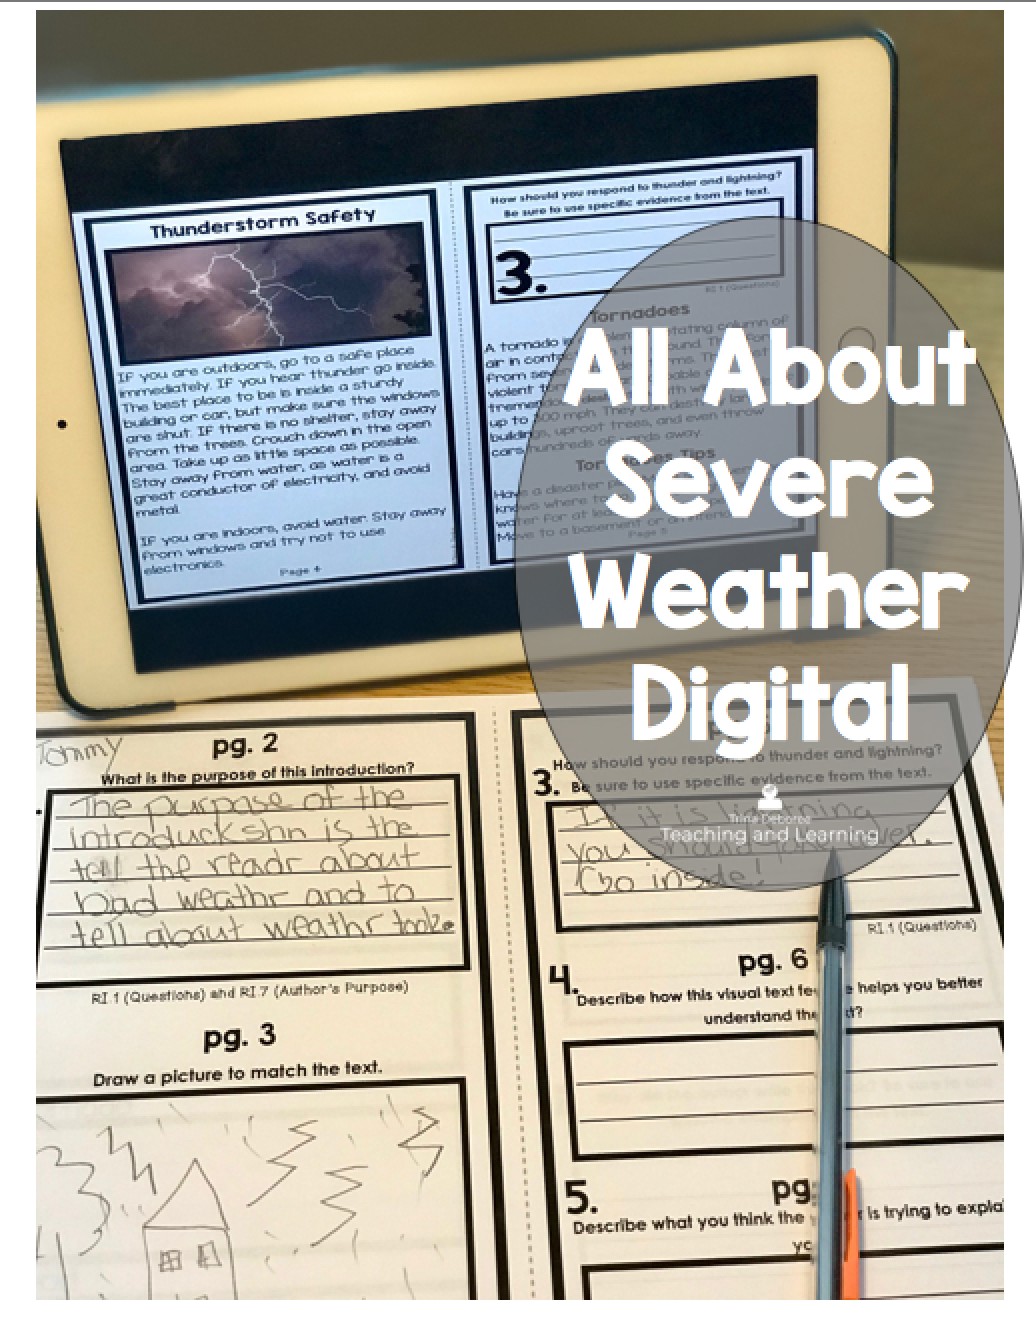 All About Severe Weather Digital Version   All about severe weather activities for 2nd graders includes this handy product that discuses natural disasters and how to prepare for bad weather during a watch and a warning. All About Severe Weather Digital Version is the same interactive reader but now can be used in your one-to-one or digital center classrooms. Click on the link to find out more.